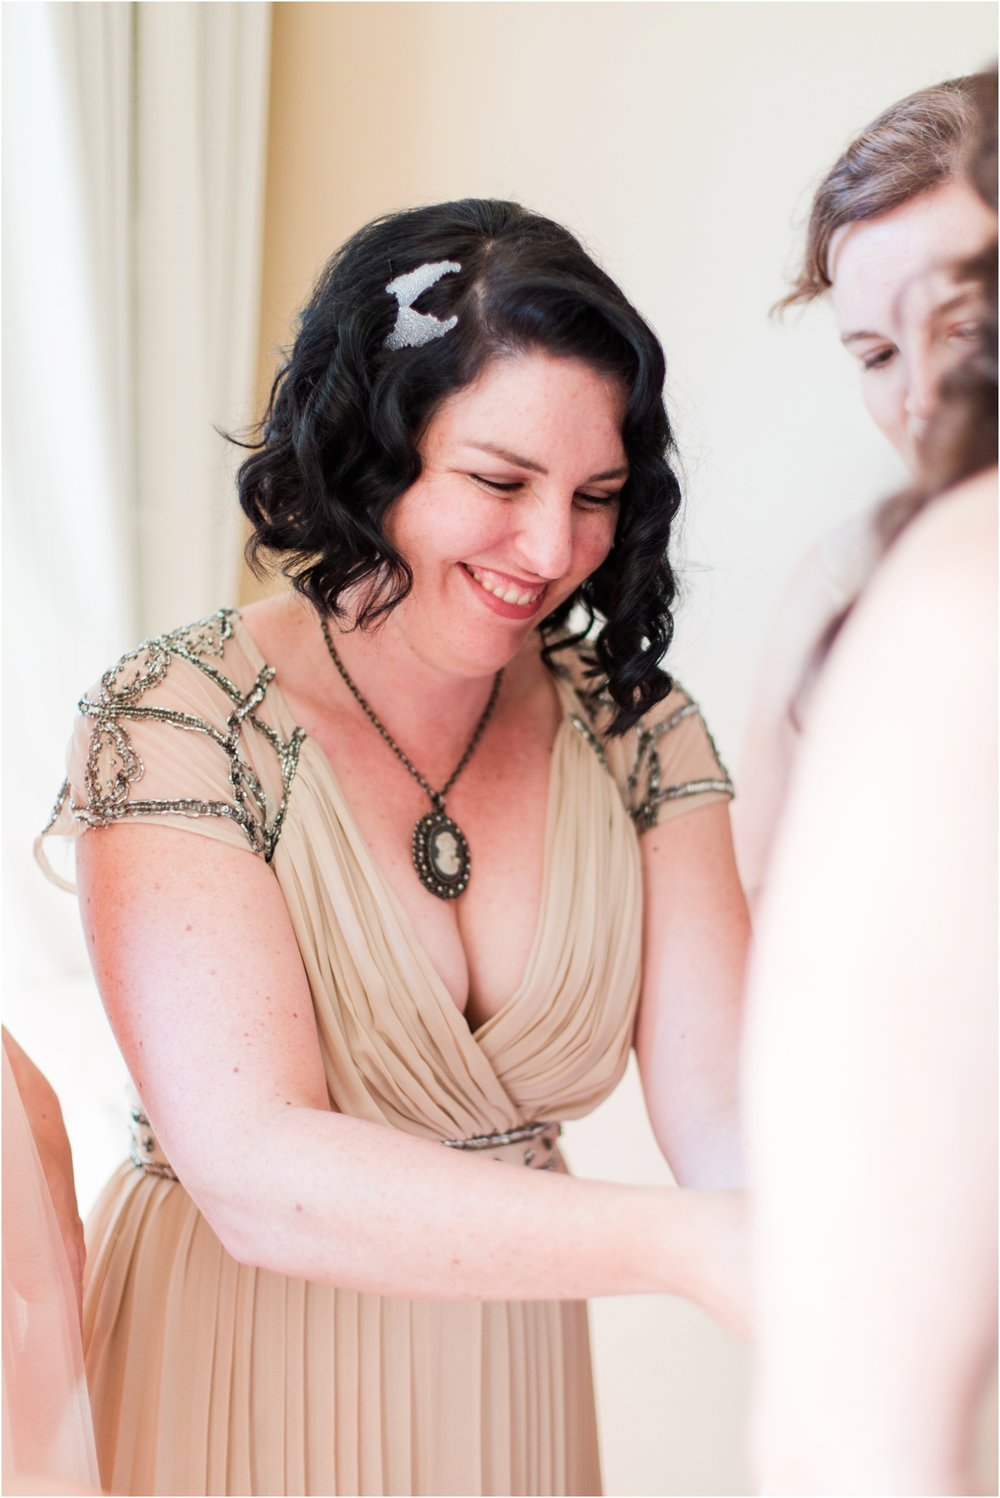 Saratoga Springs wedding pictures by Briana Calderon Photography_1818.jpg